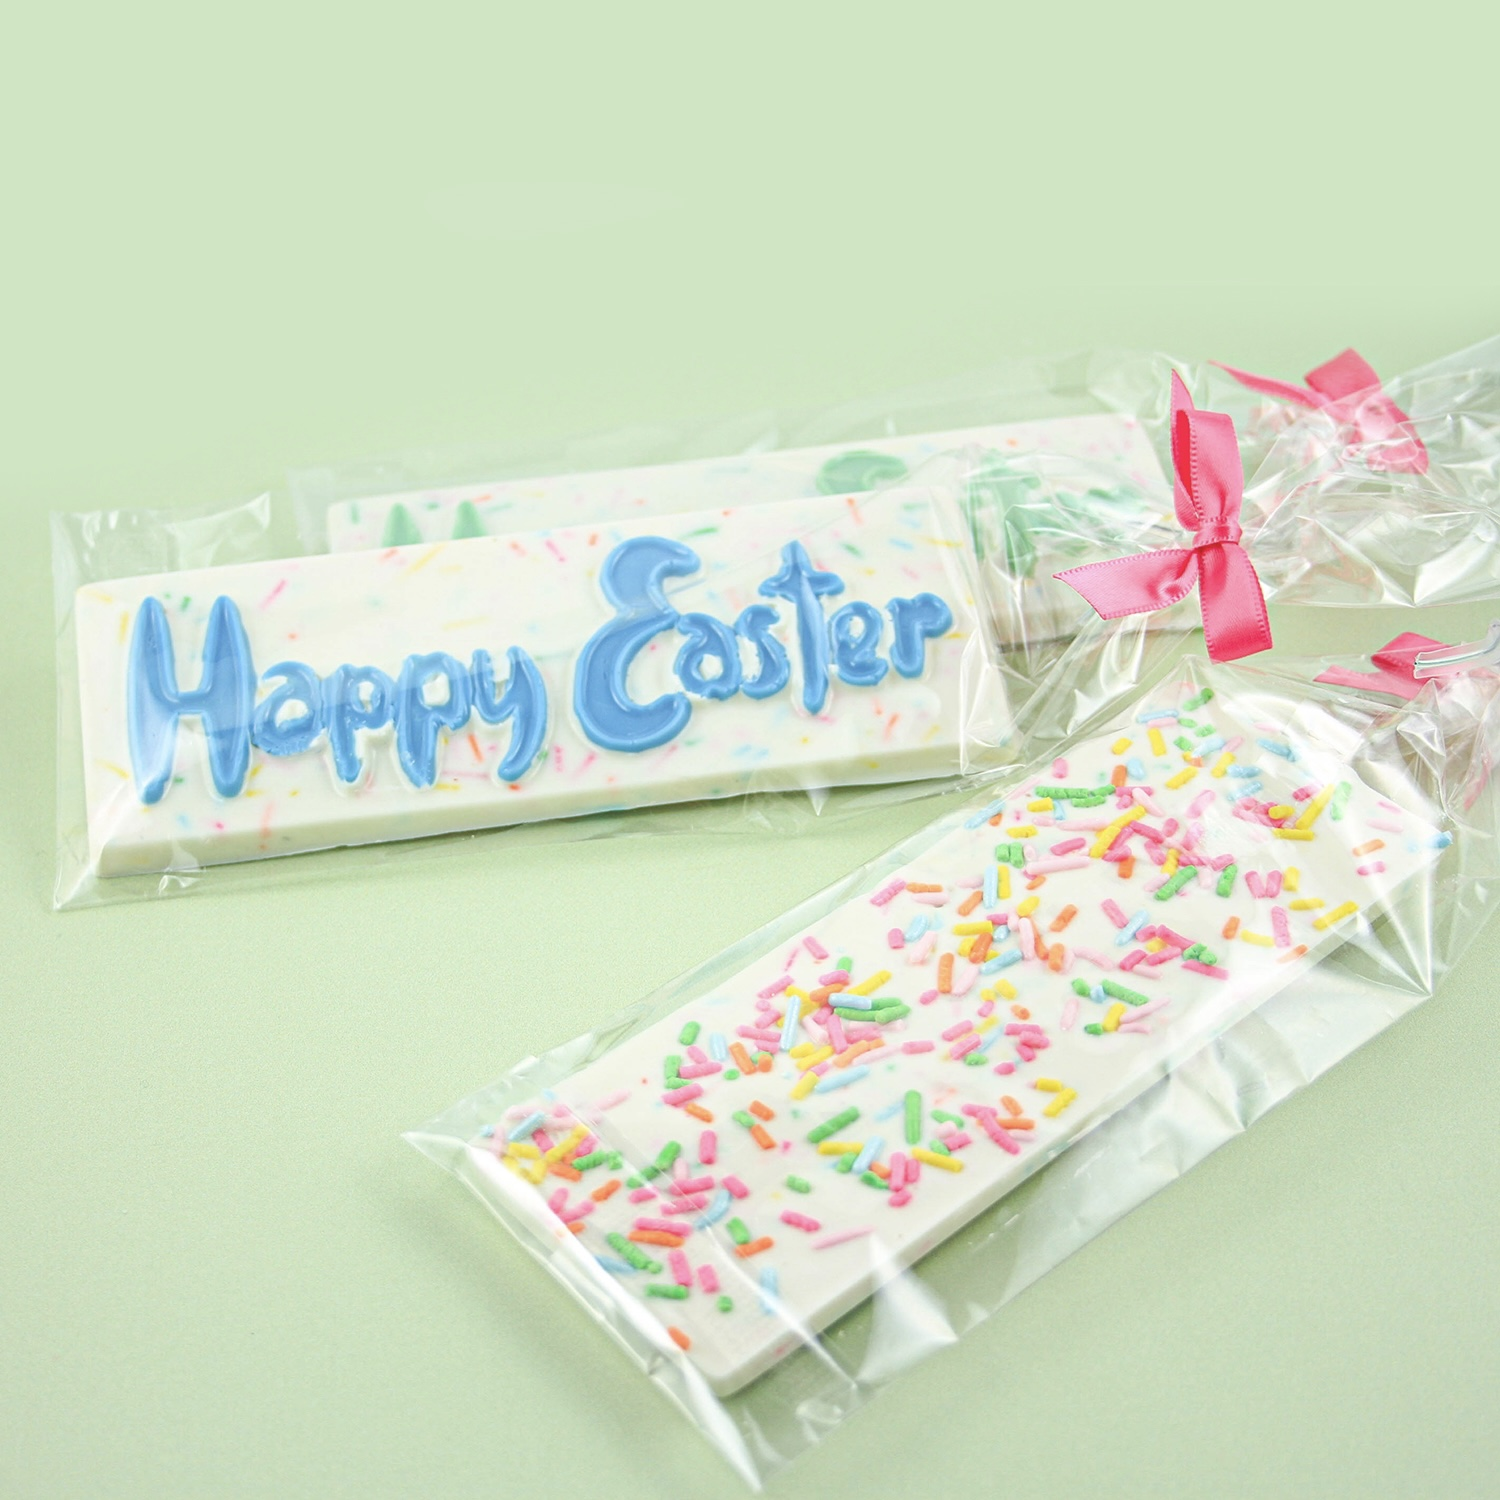 Happy Easter Candy Bar